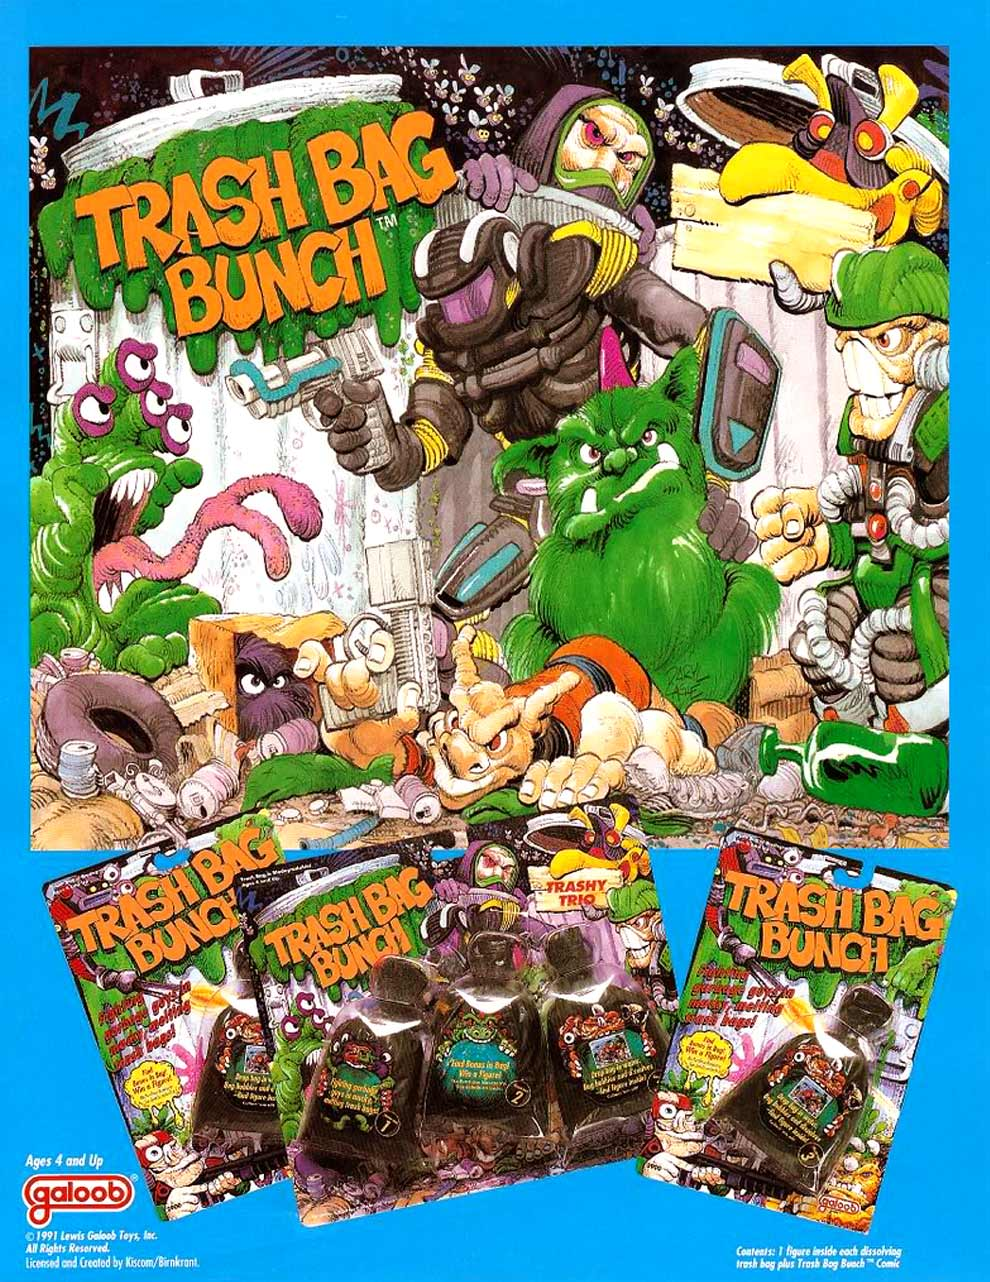 Toys From The Past 96 Trash Bag Bunch Wave 1 Figures 1